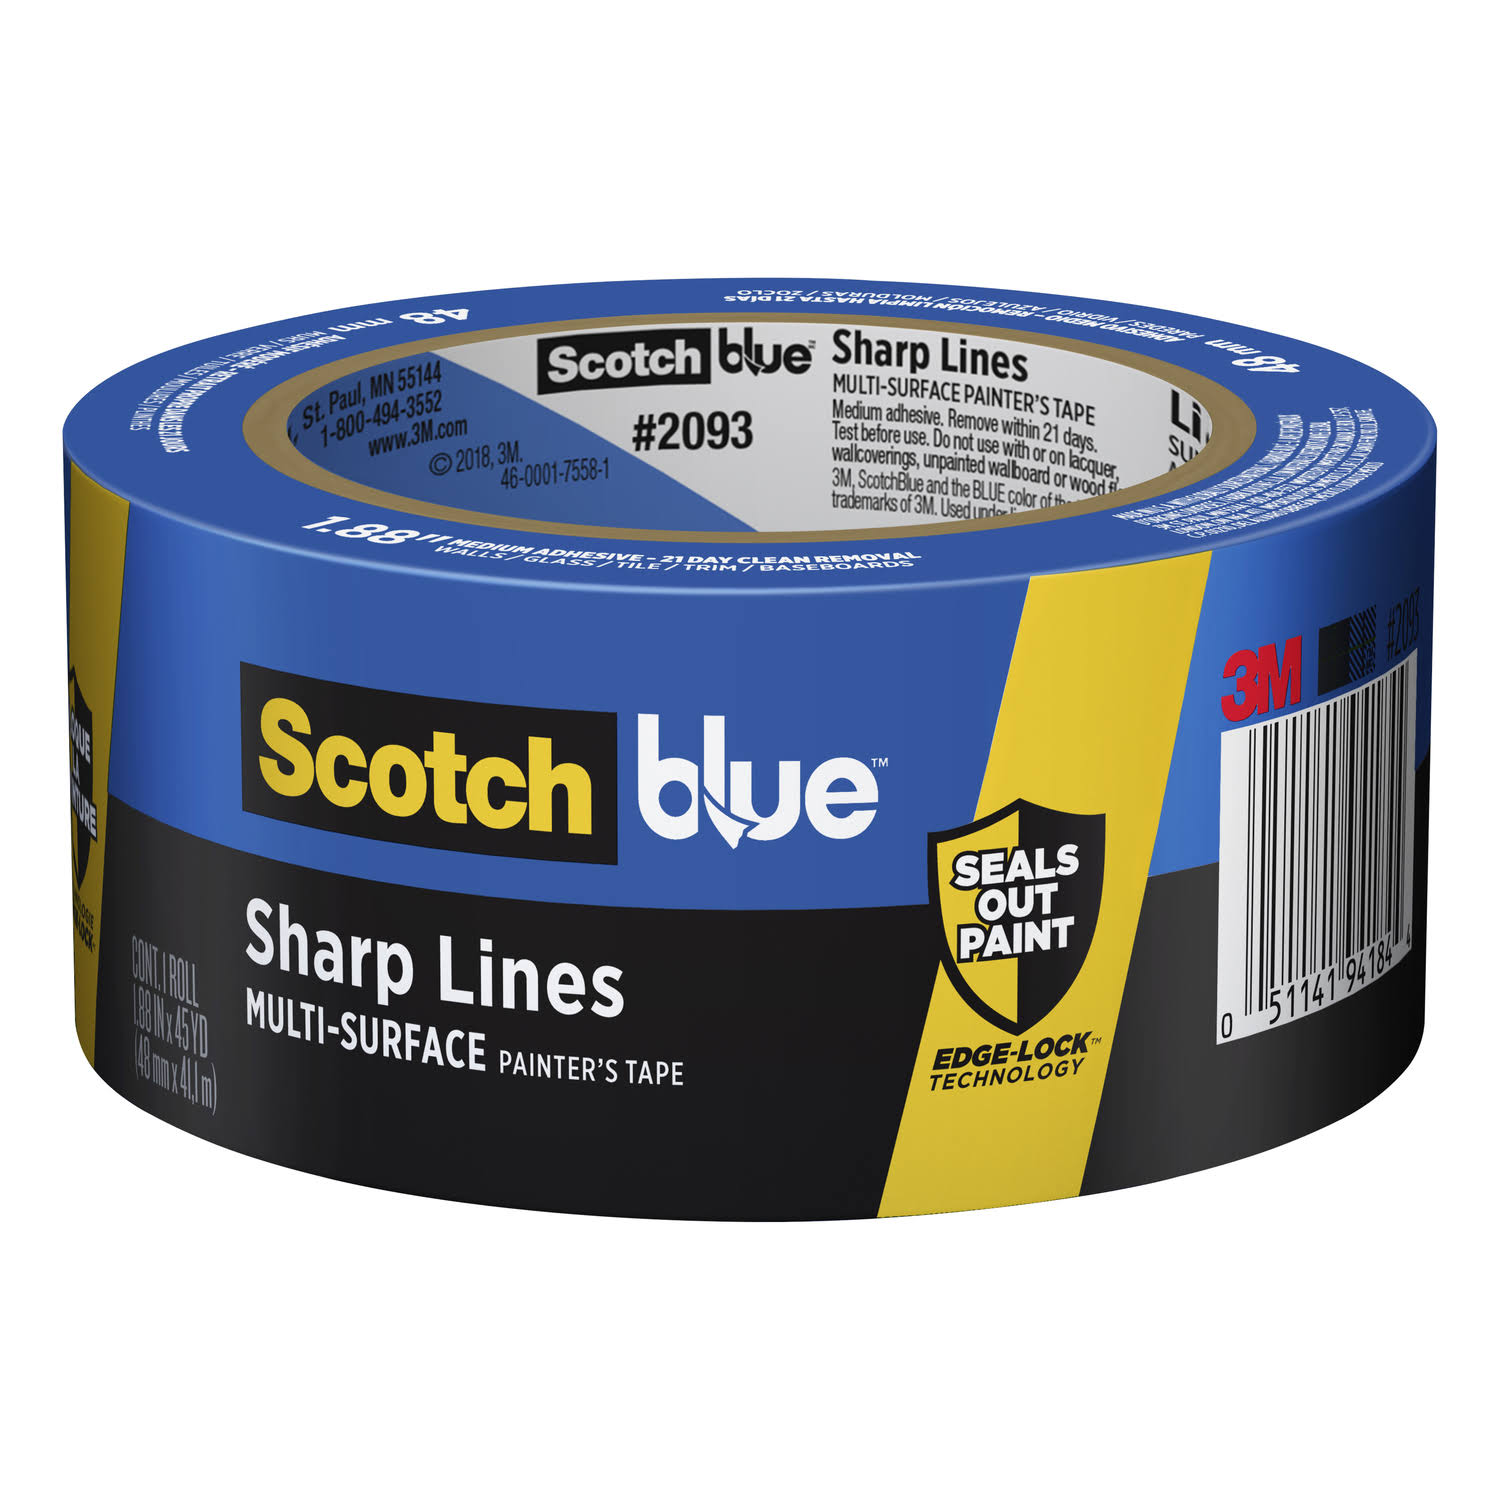 3M ScotchBlue Painter's Tape